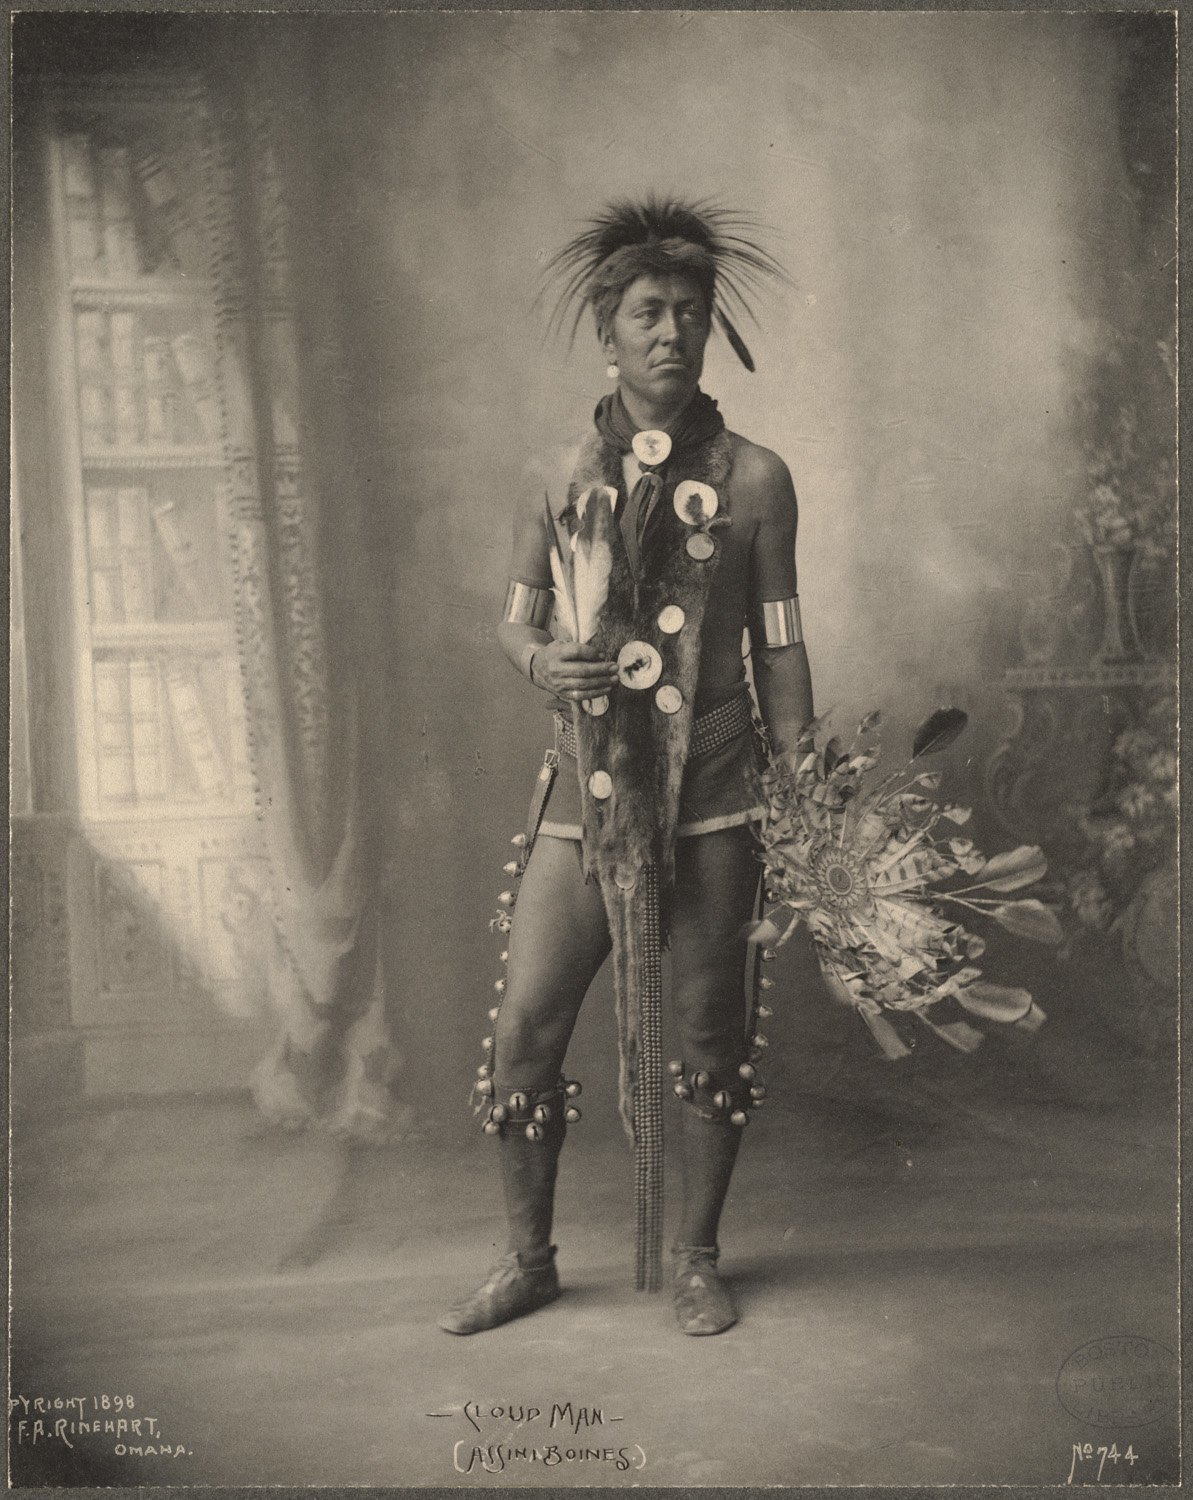 Cloud Man, Assinaboines, 1899. (Photo by Frank A. Rinehart)